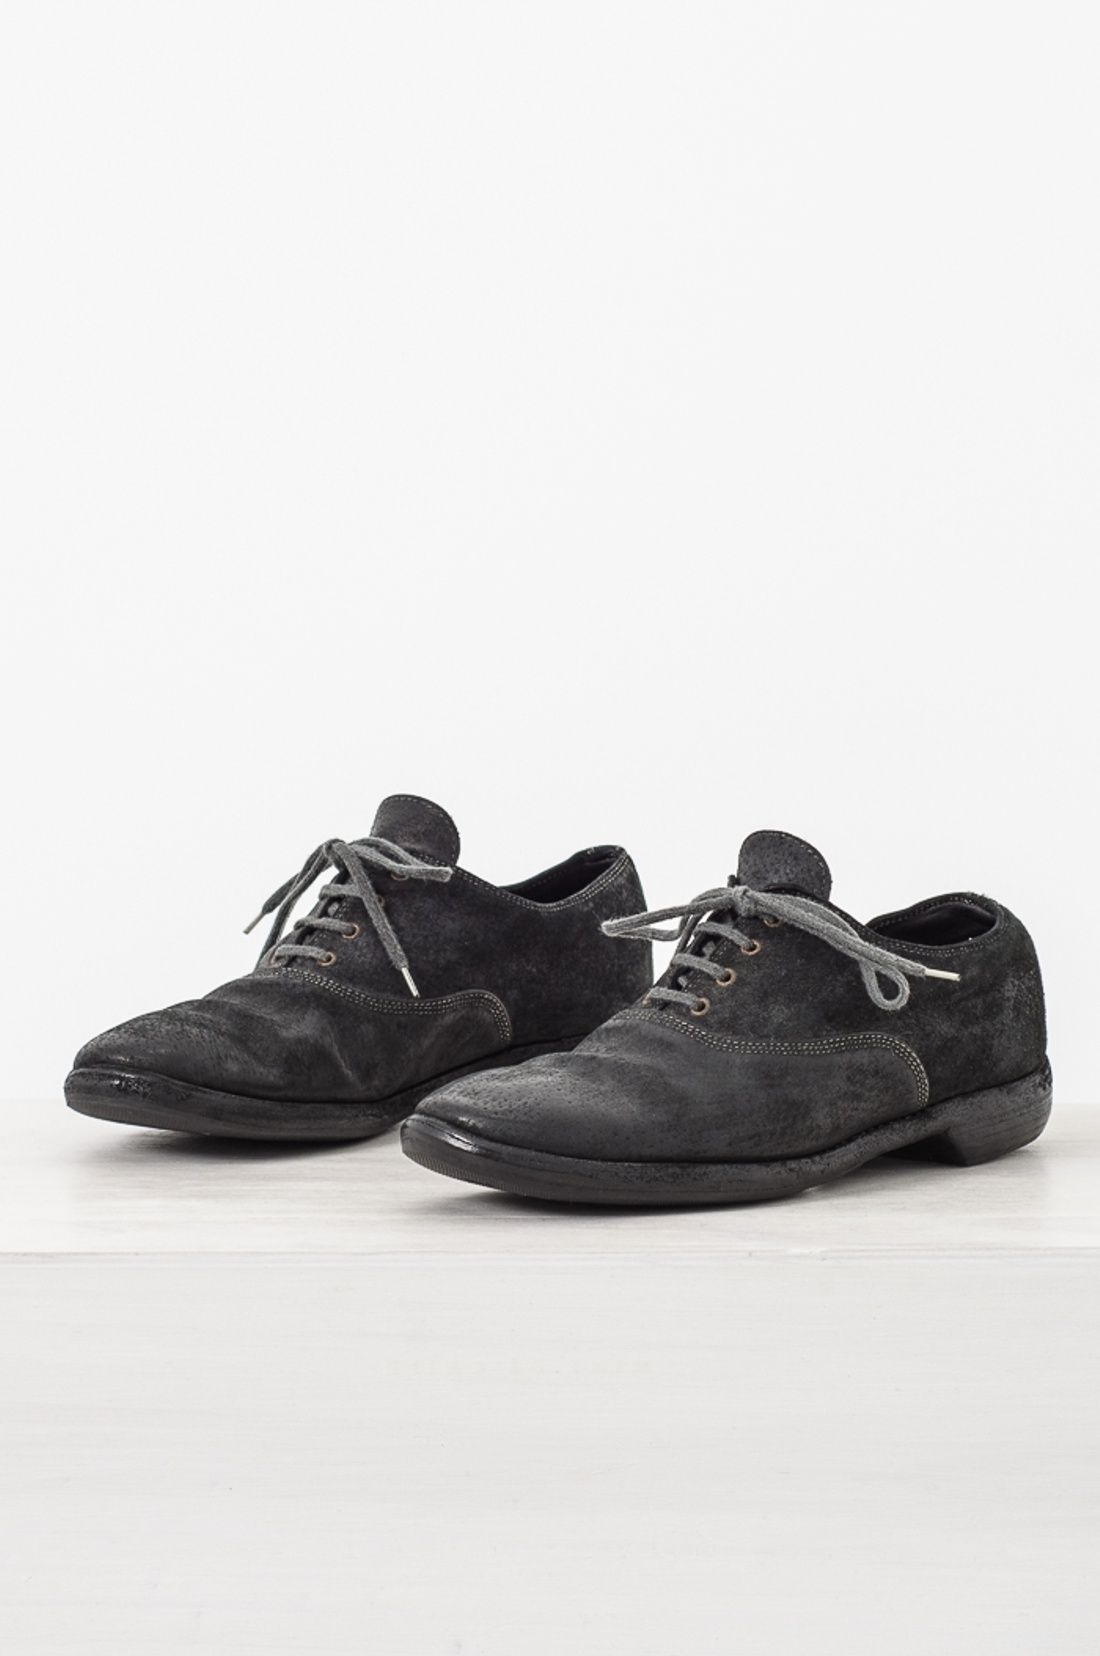 cd3f432eb2f46 Guidi 110 Reverse Kangaroo Leather Derby Size 9  378 - Grailed ...